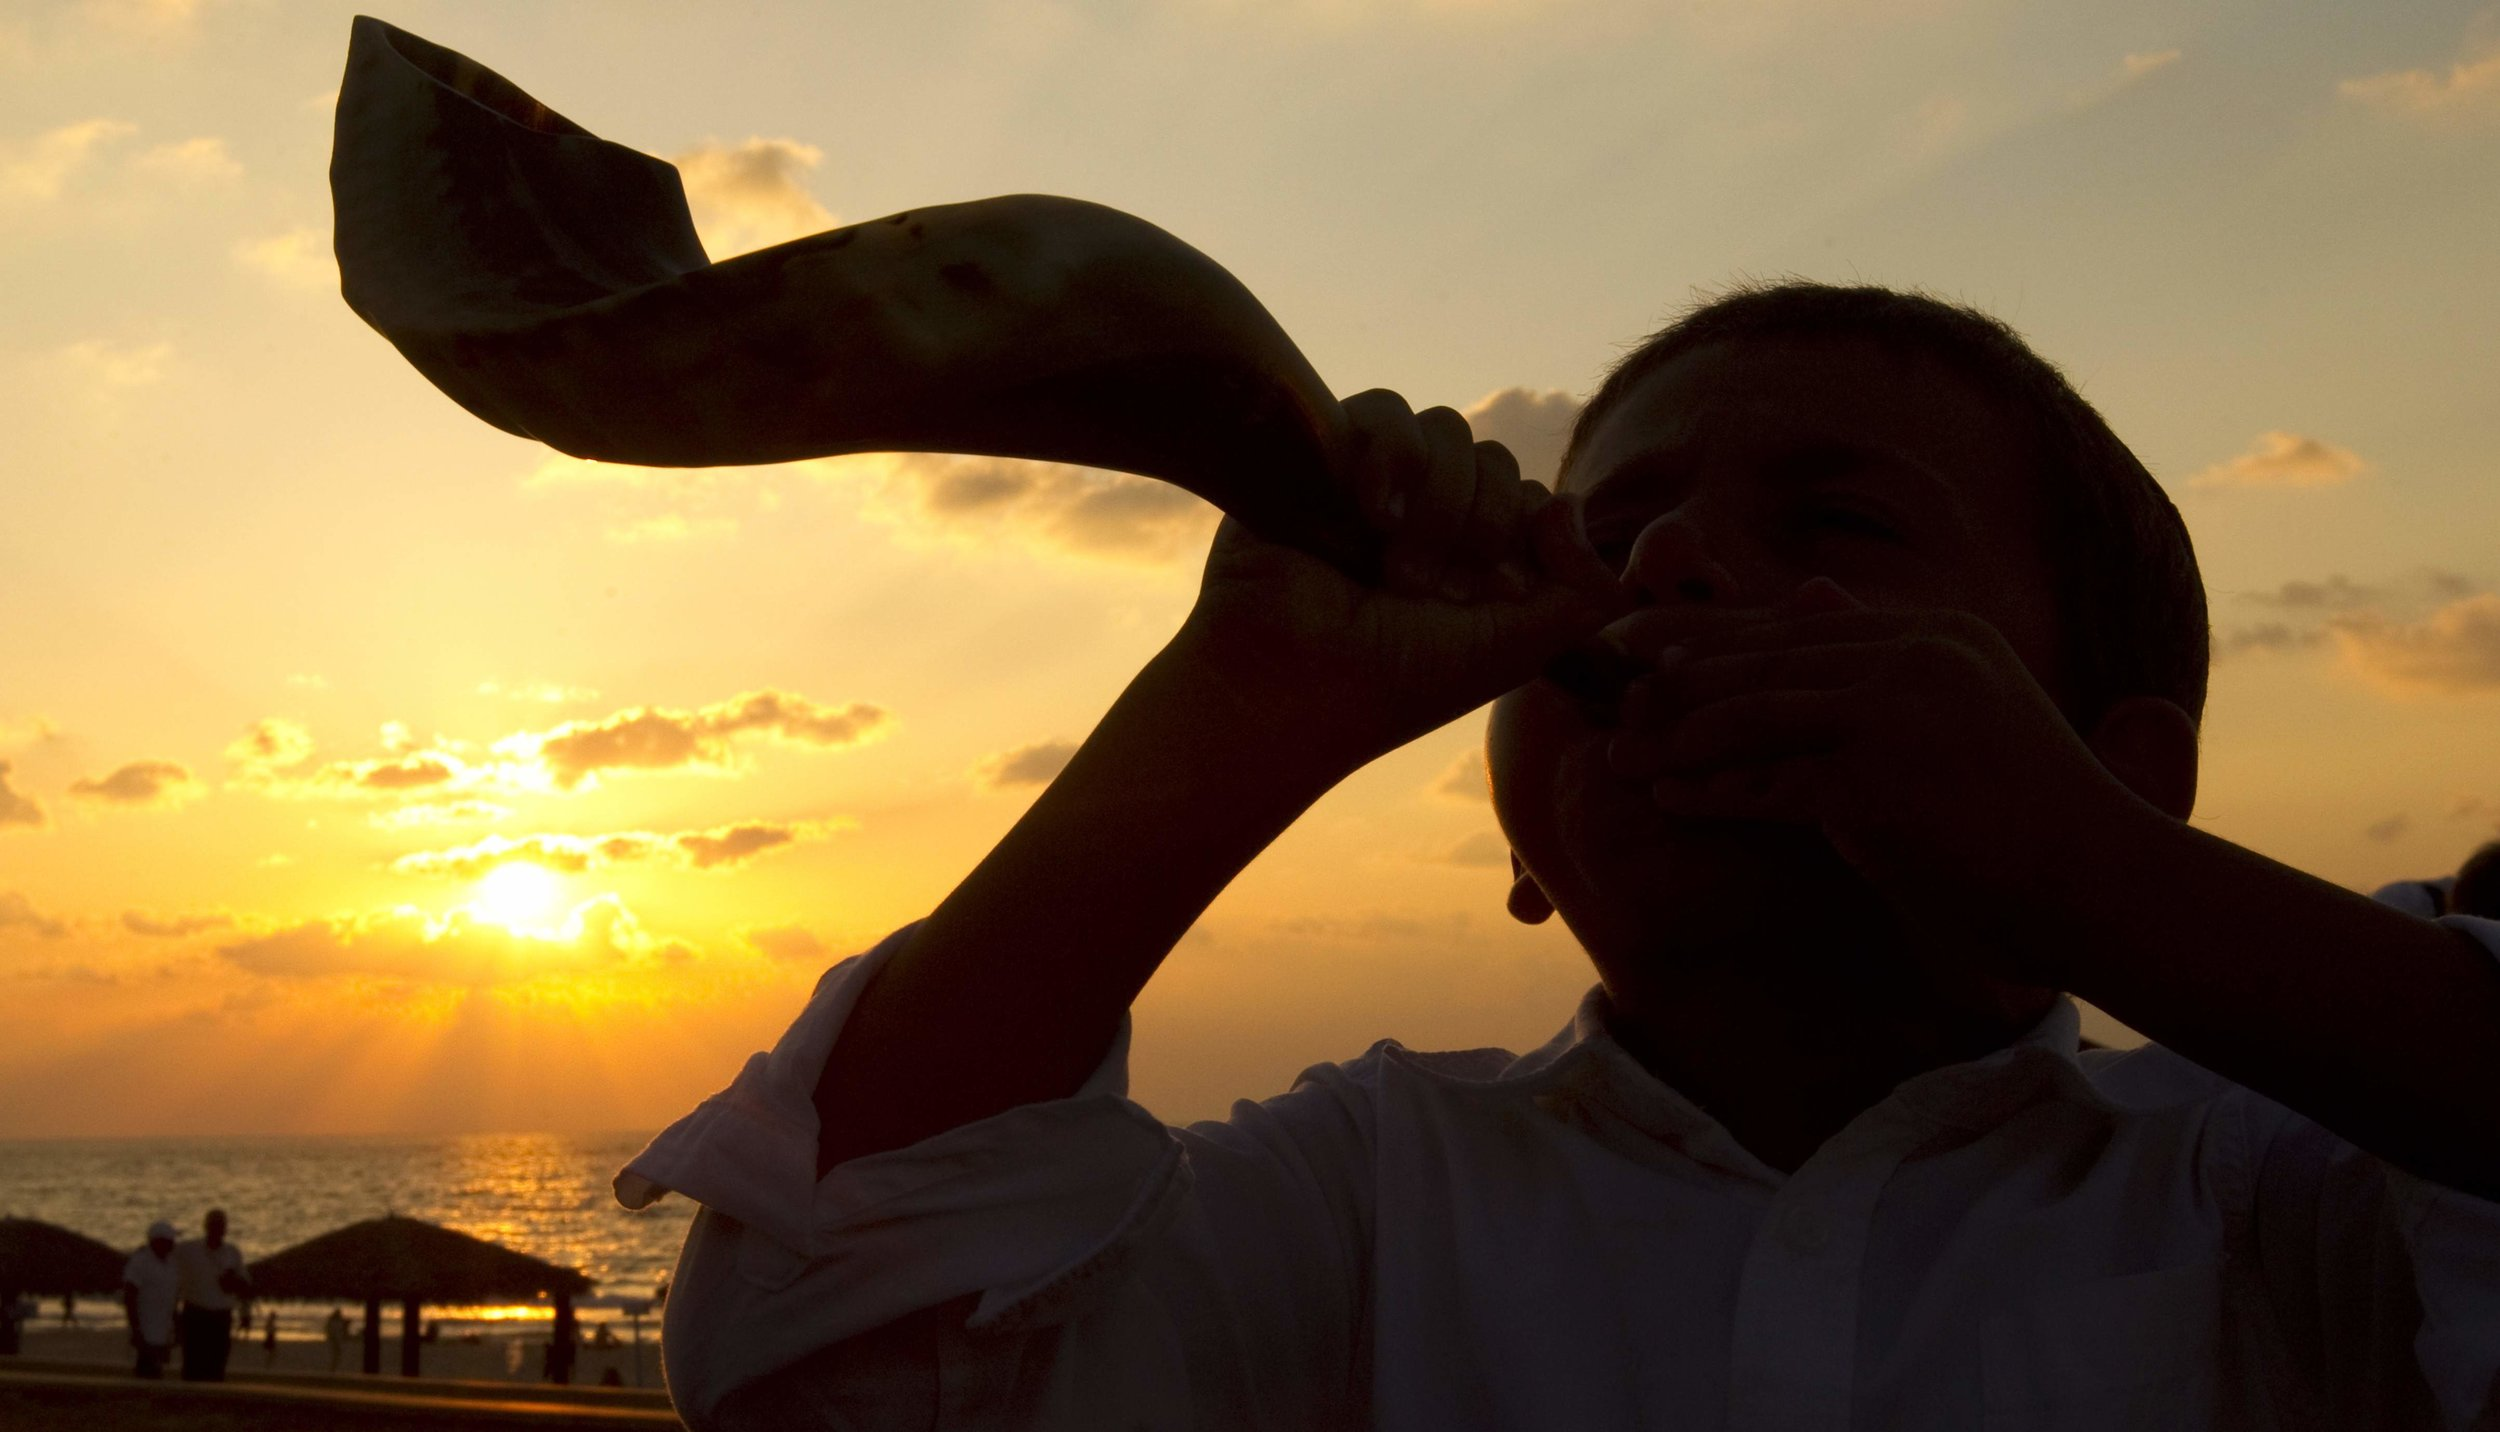 yom-kippur-times-jewish-high-holidays-when-what-jerusalem-israel-judaism-shofar.jpg